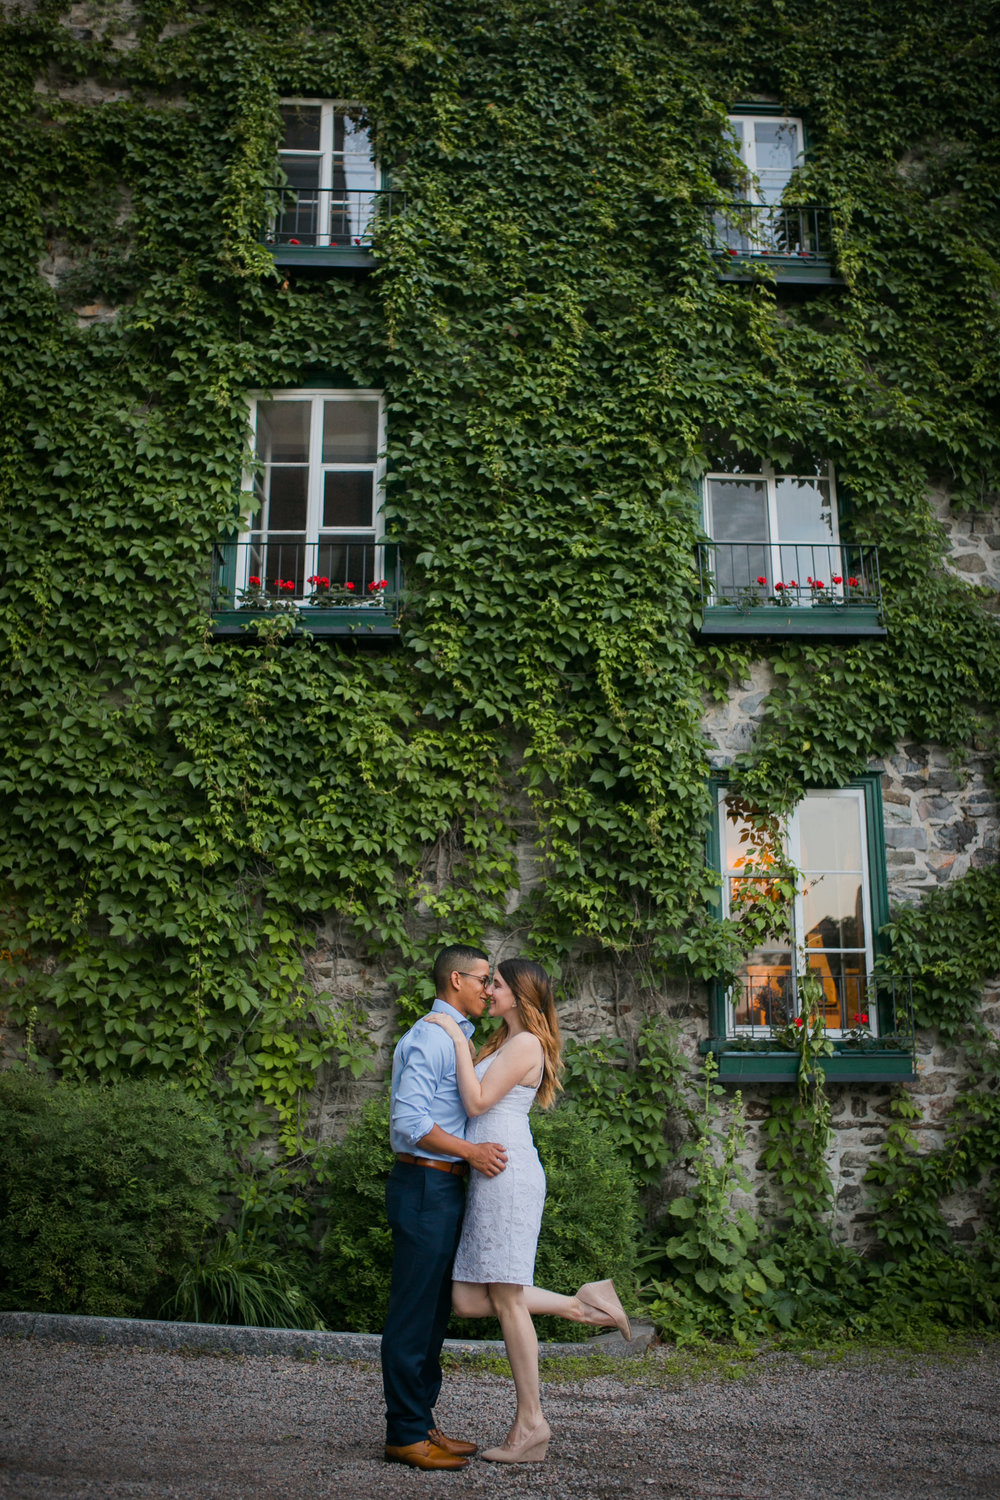 Vieux Old quebec engagement photos at sunset by Ness Photography.8.jpg